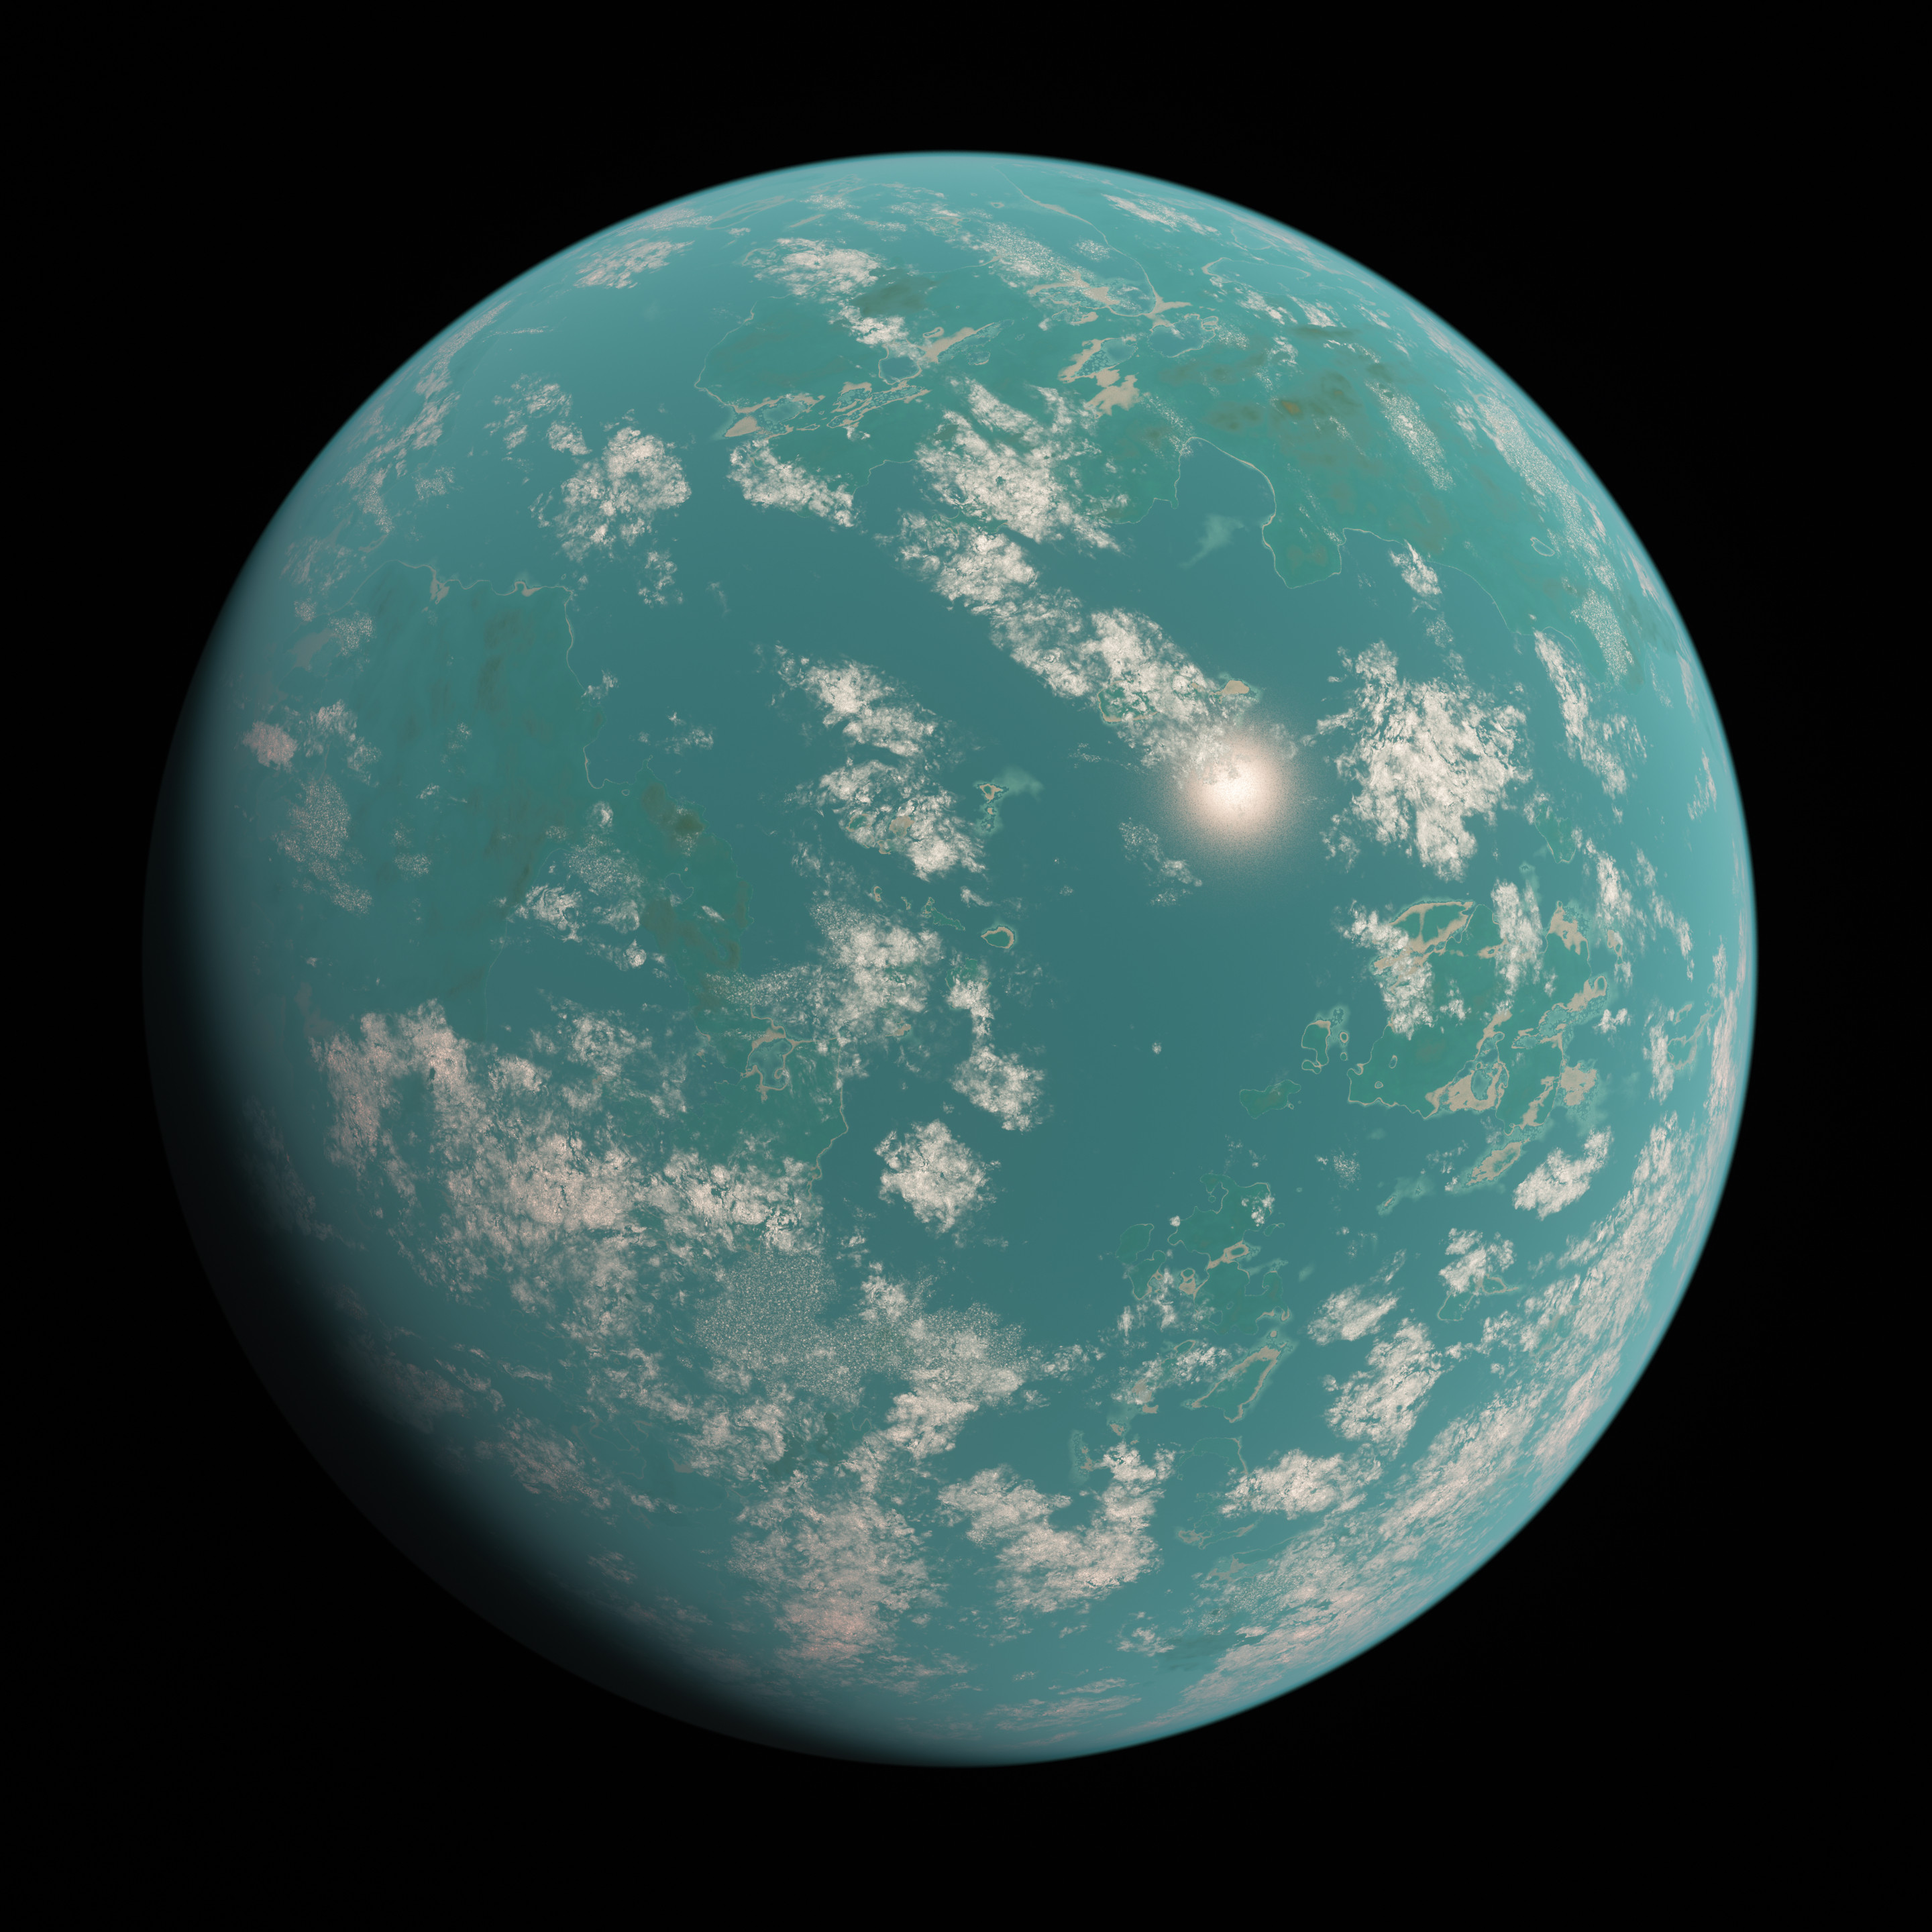 Full view of the super-earth.